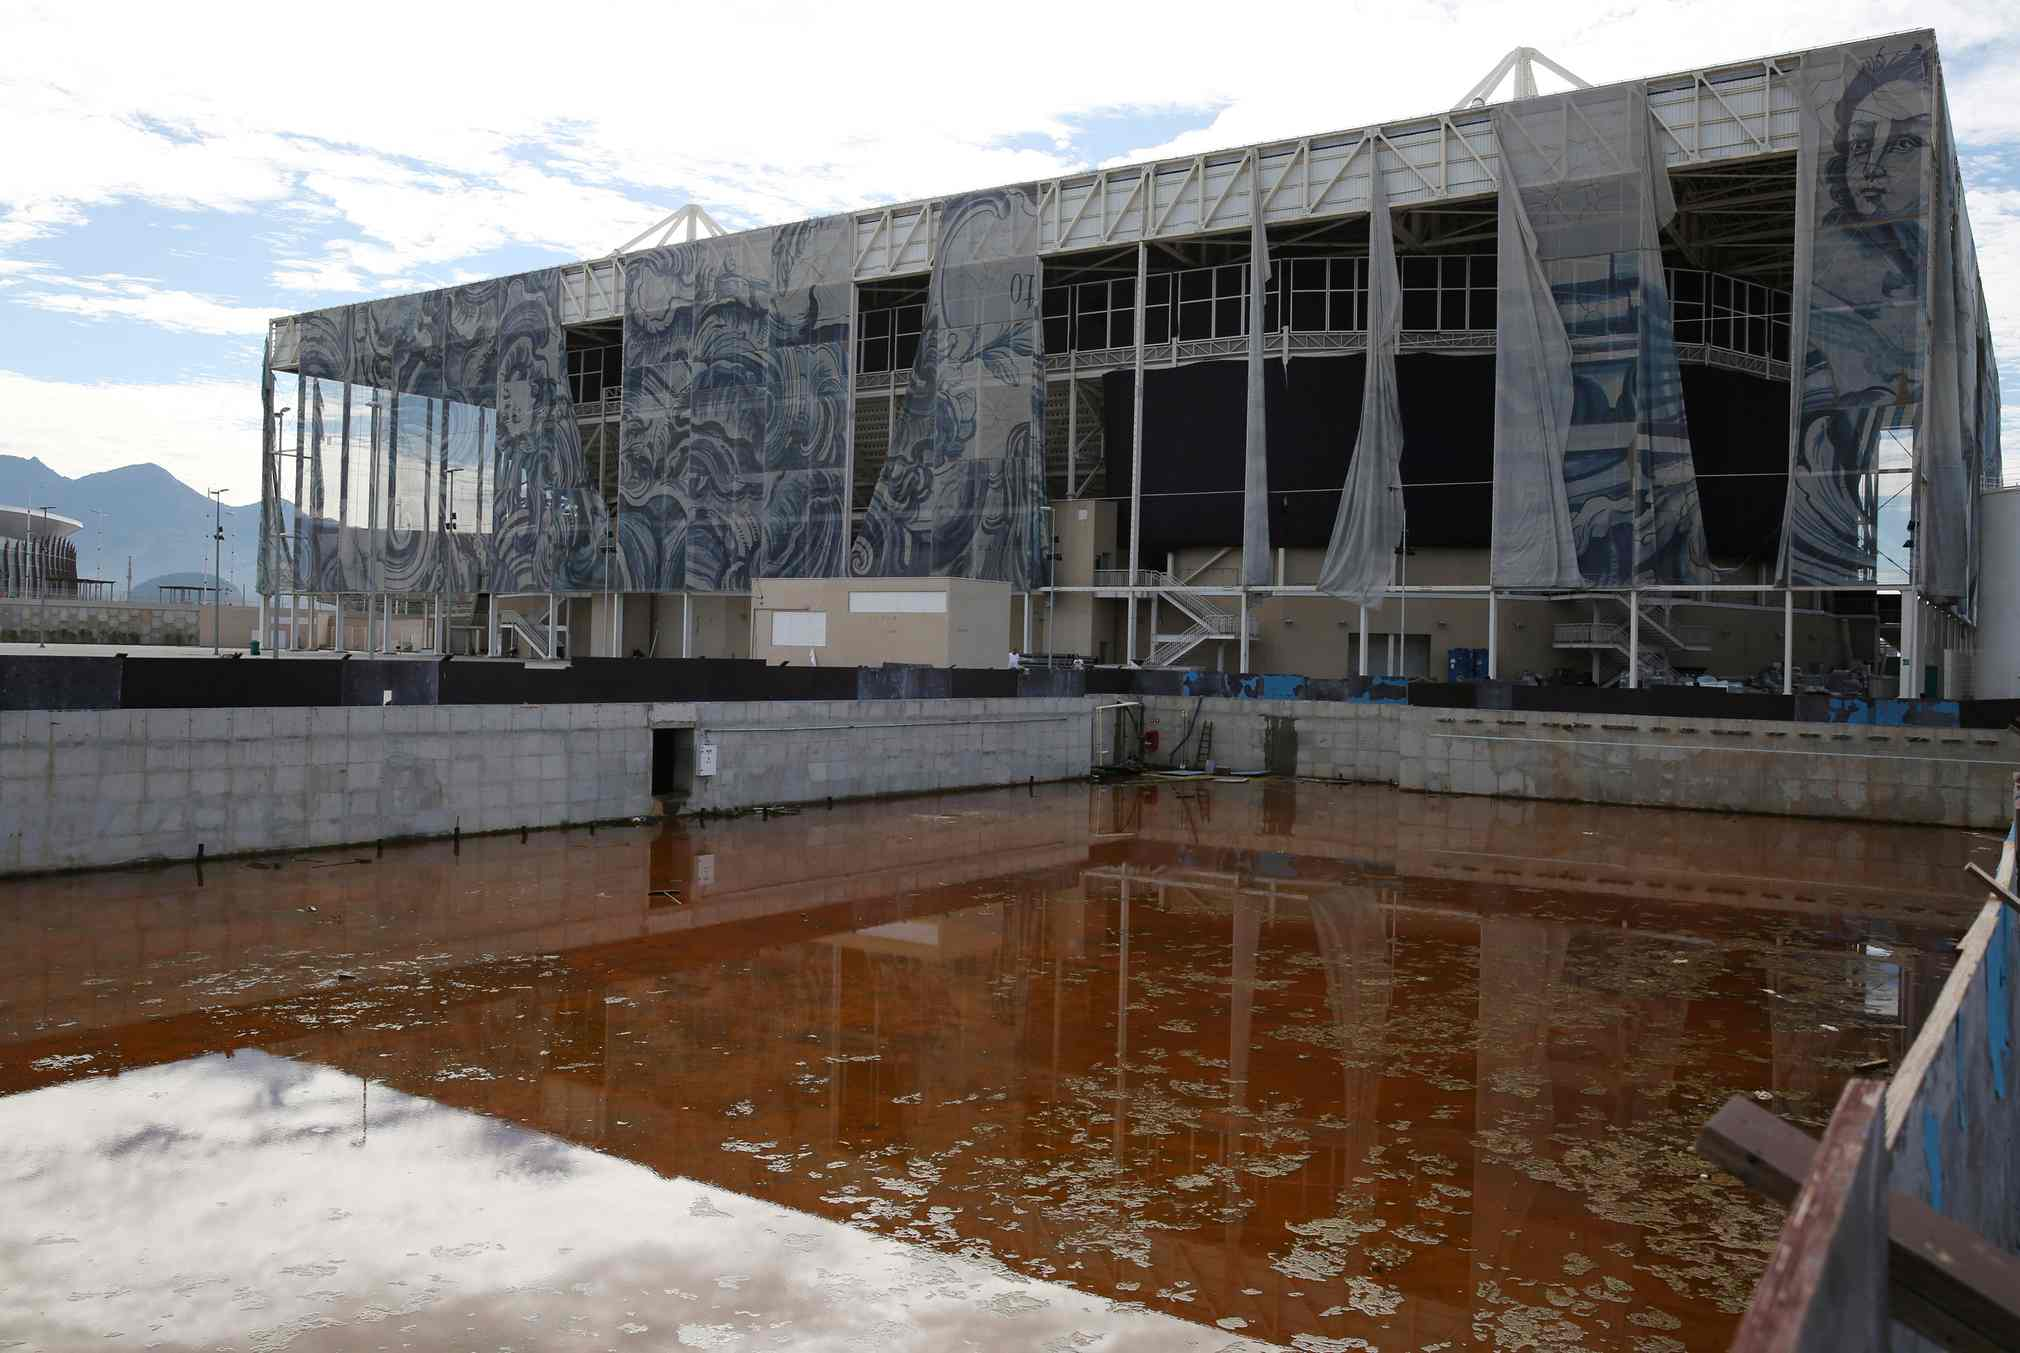 The Rio Olympic Stadiums, only 6 months after the event.